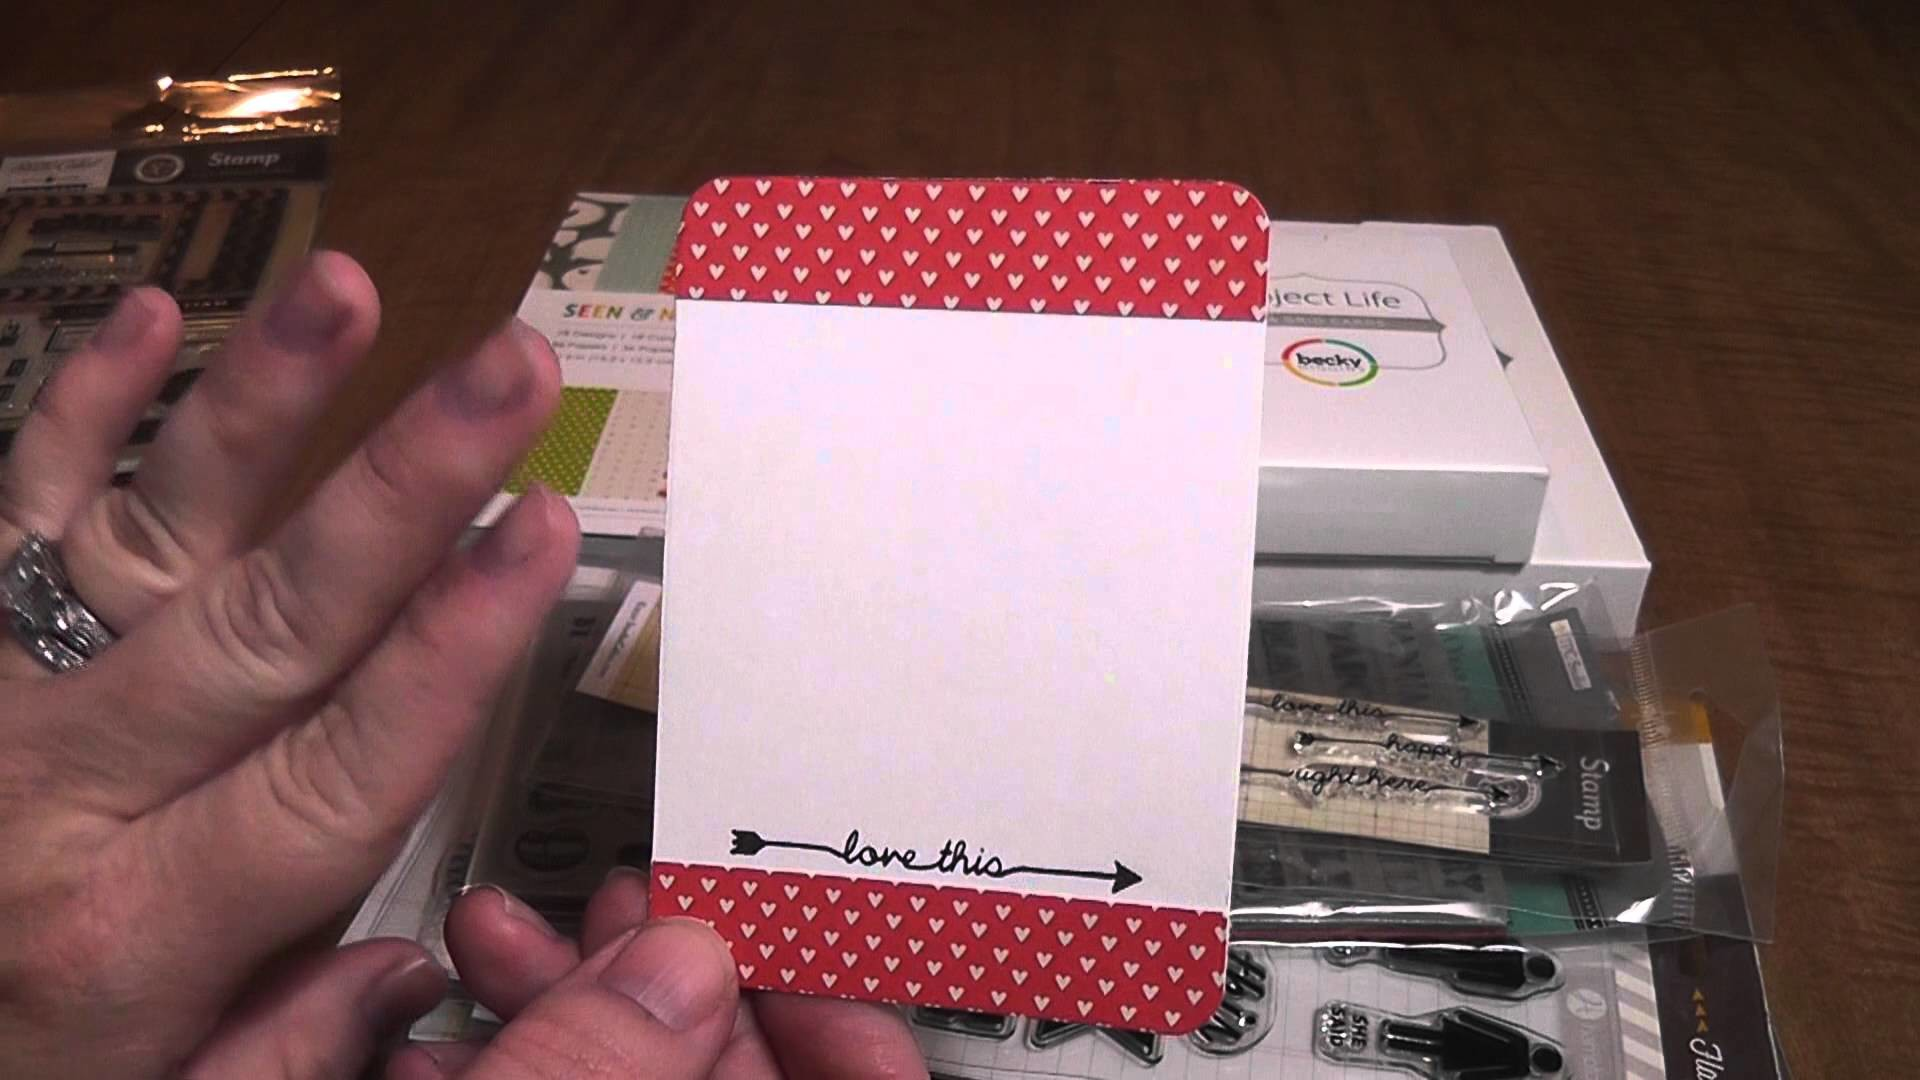 Handmade Project Life Cards for a Swap!